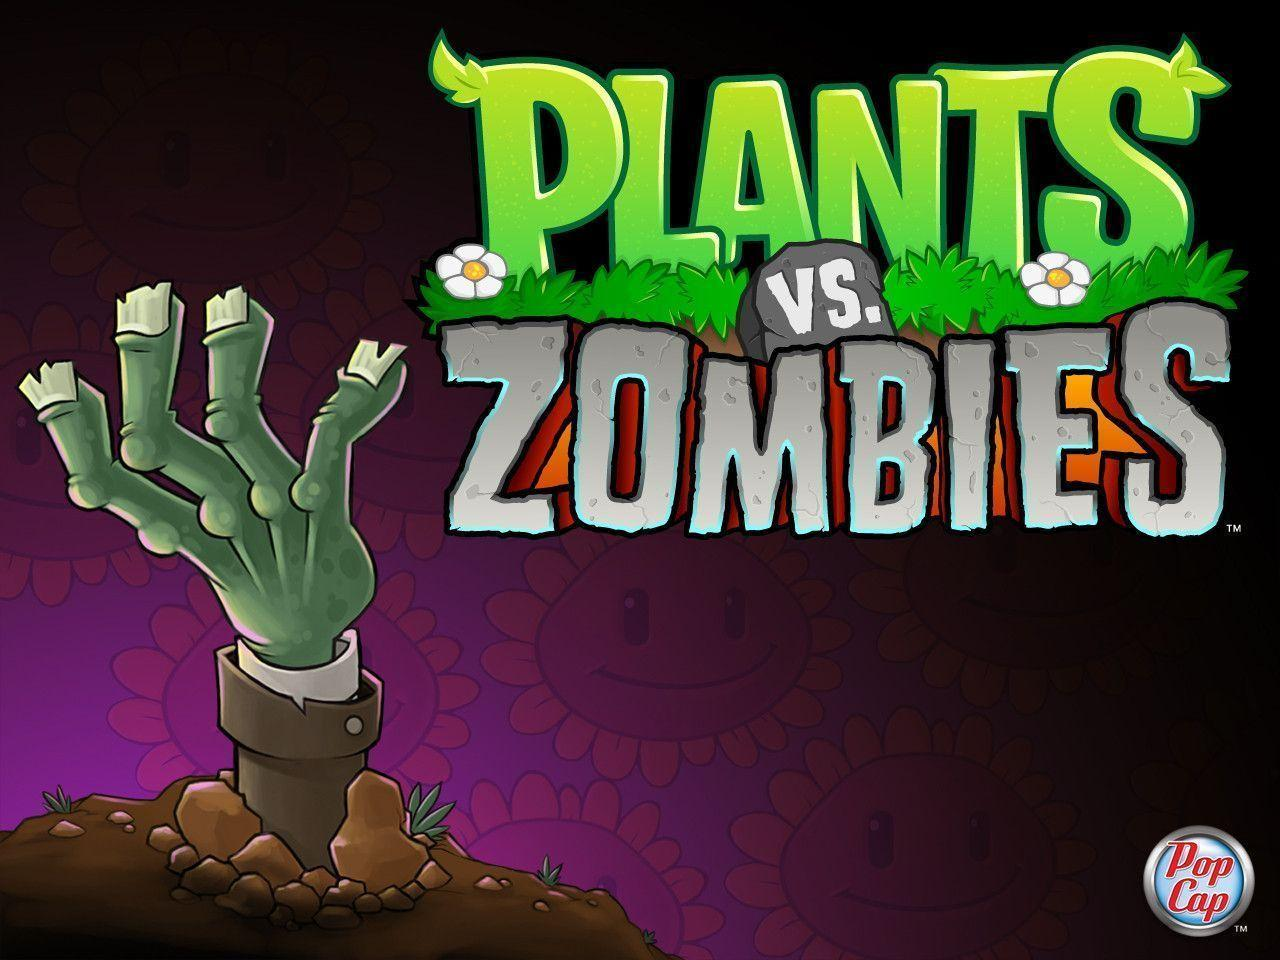 Plants vs zombies wallpapers wallpaper cave popcap games plants vs zombies wallpapers music and more download toneelgroepblik Image collections